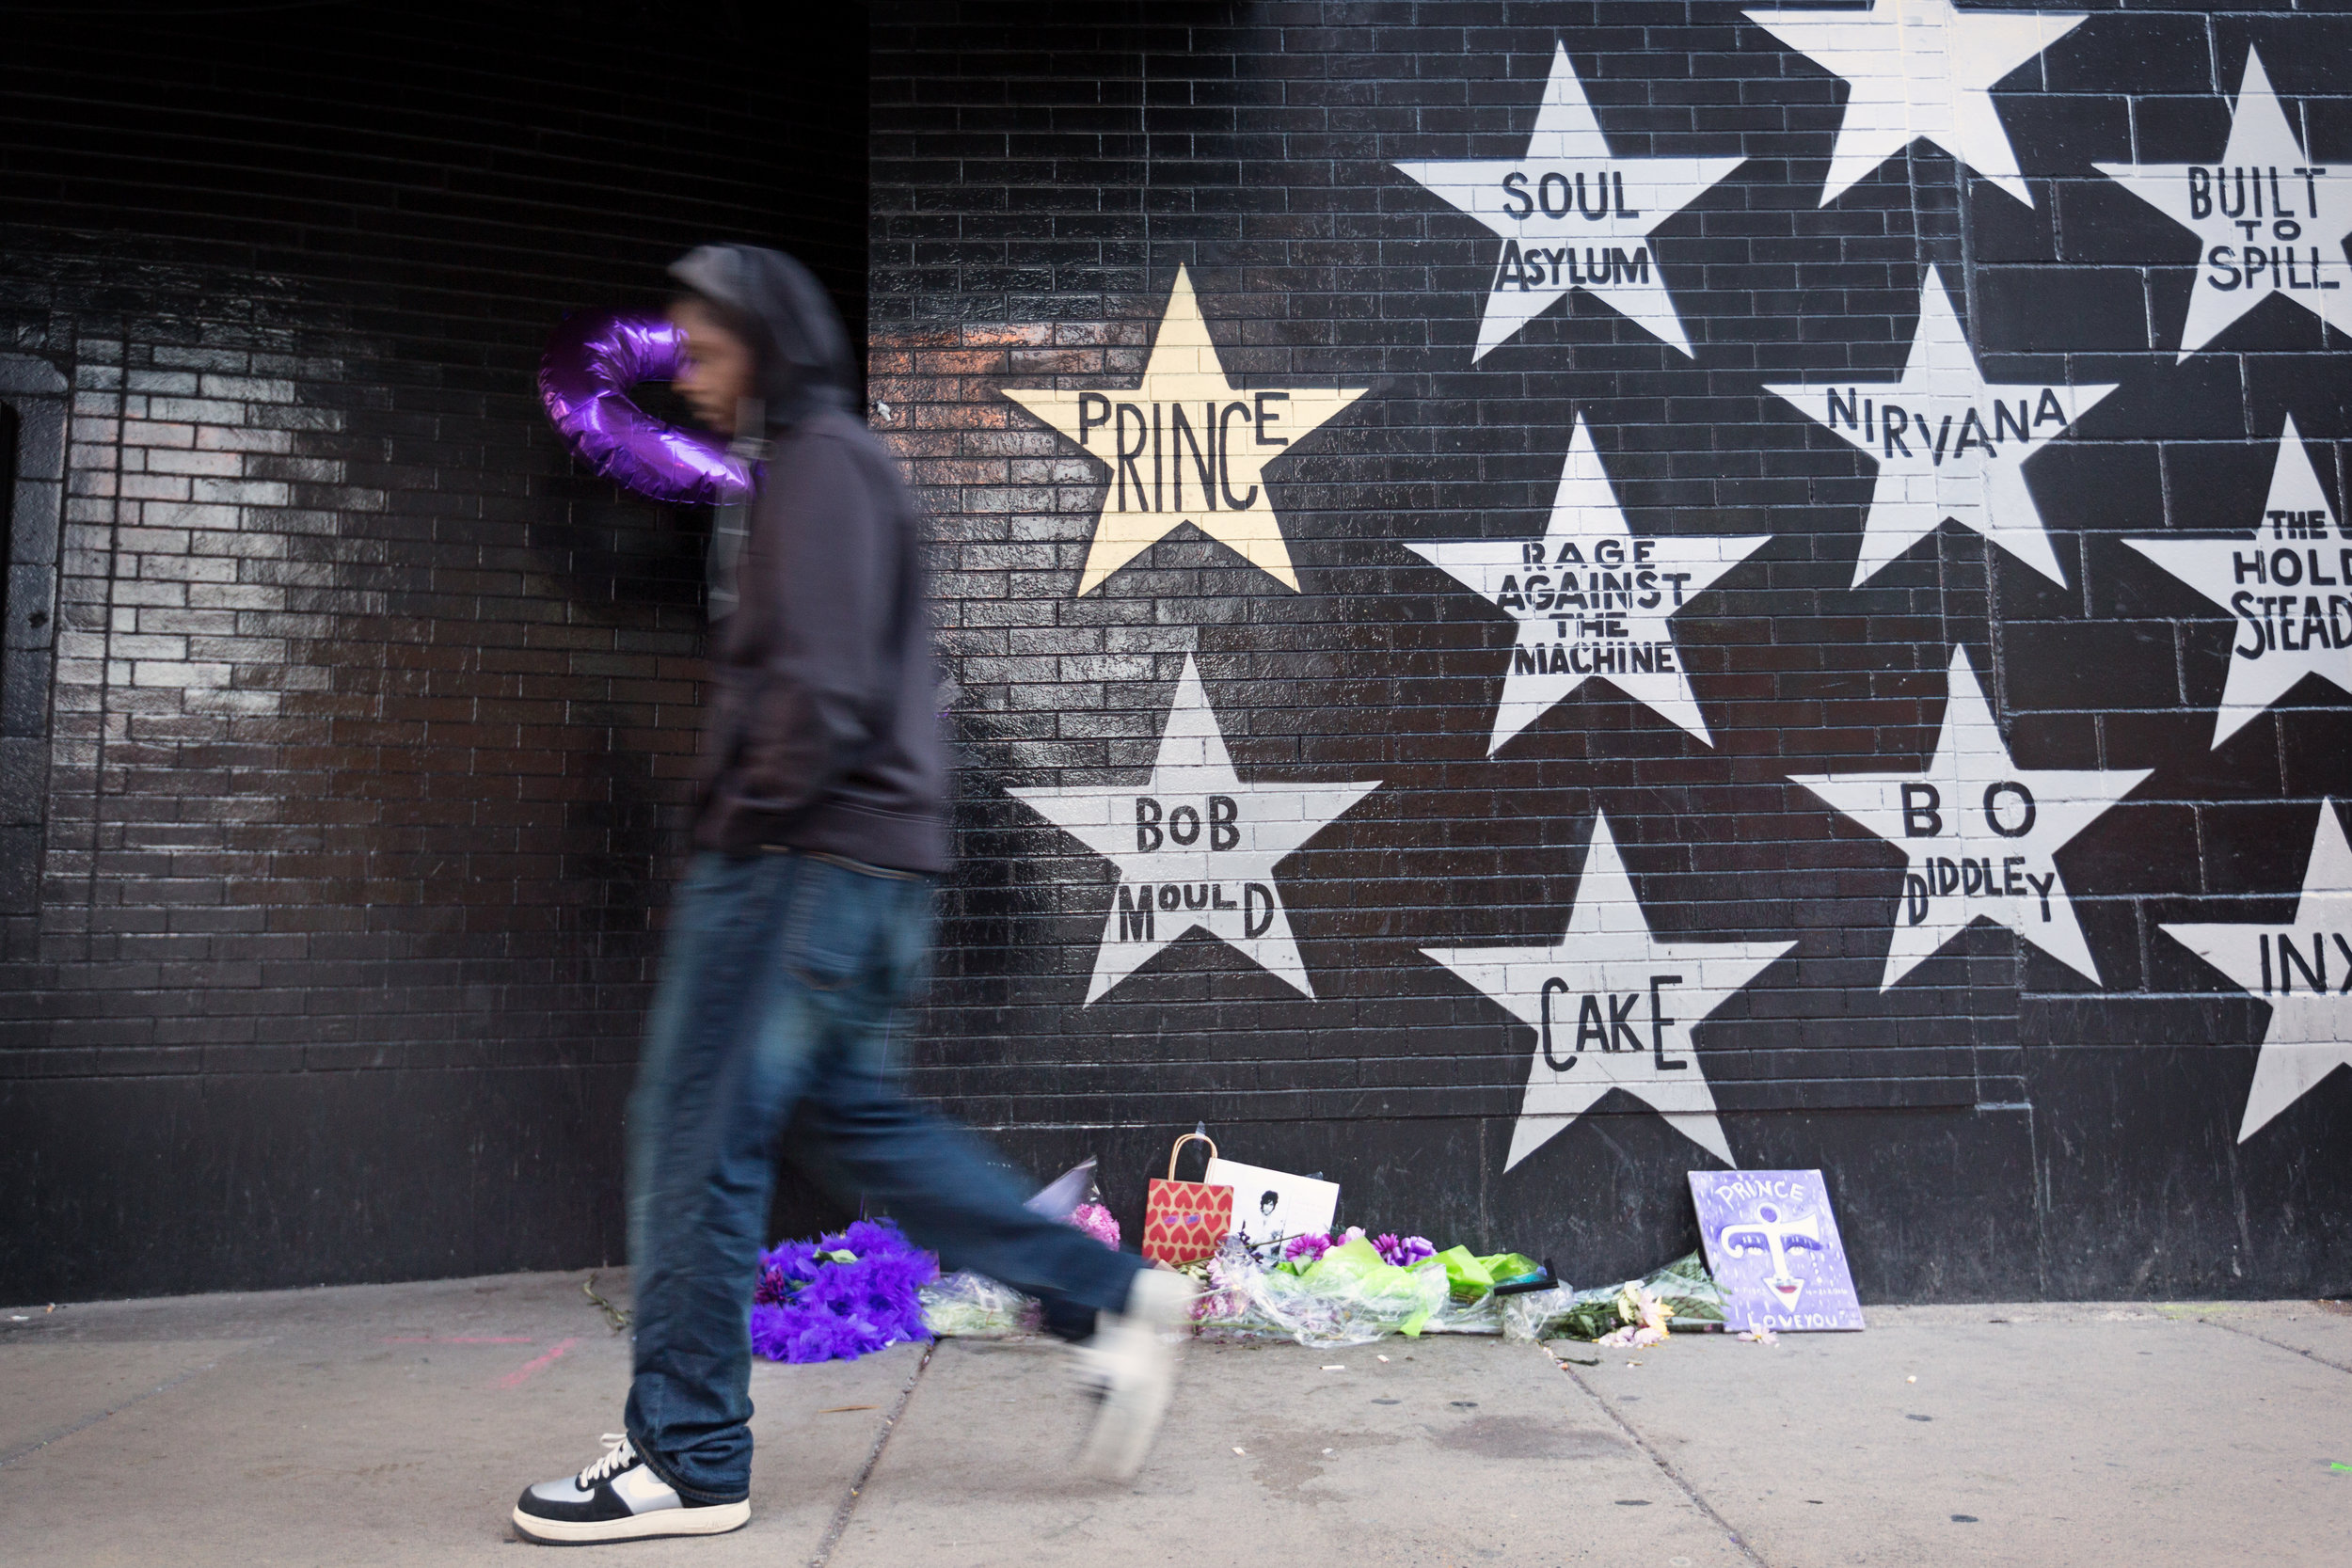 Prince's Star at First Avenue, Minneapolis MN